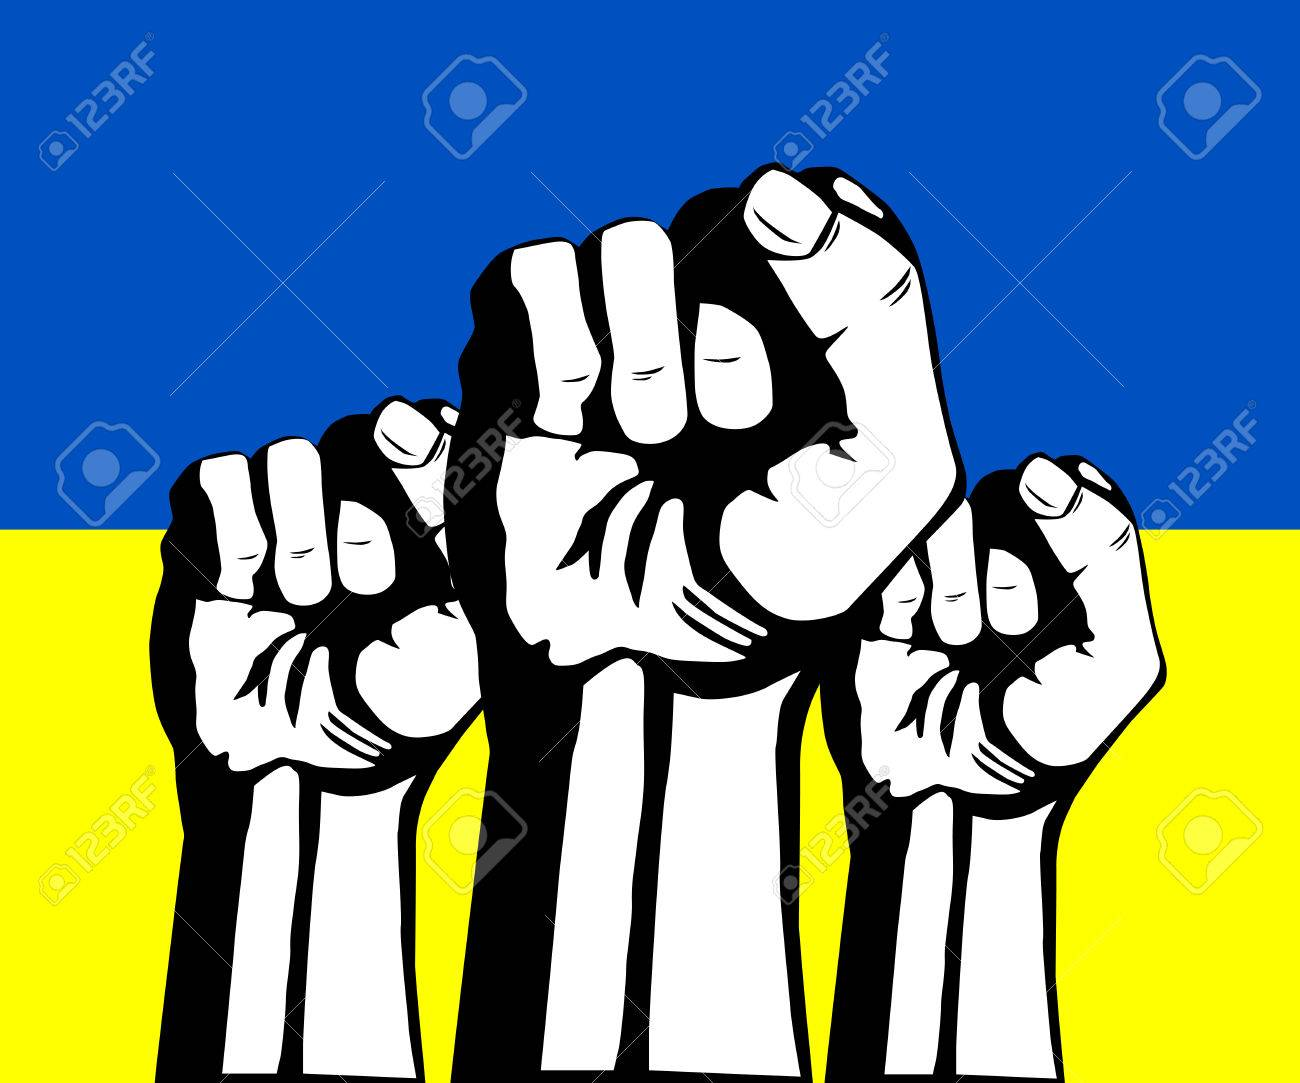 1300x1083 Protest In Ukraine. Clenched Fist Held In Protest. Royalty Free